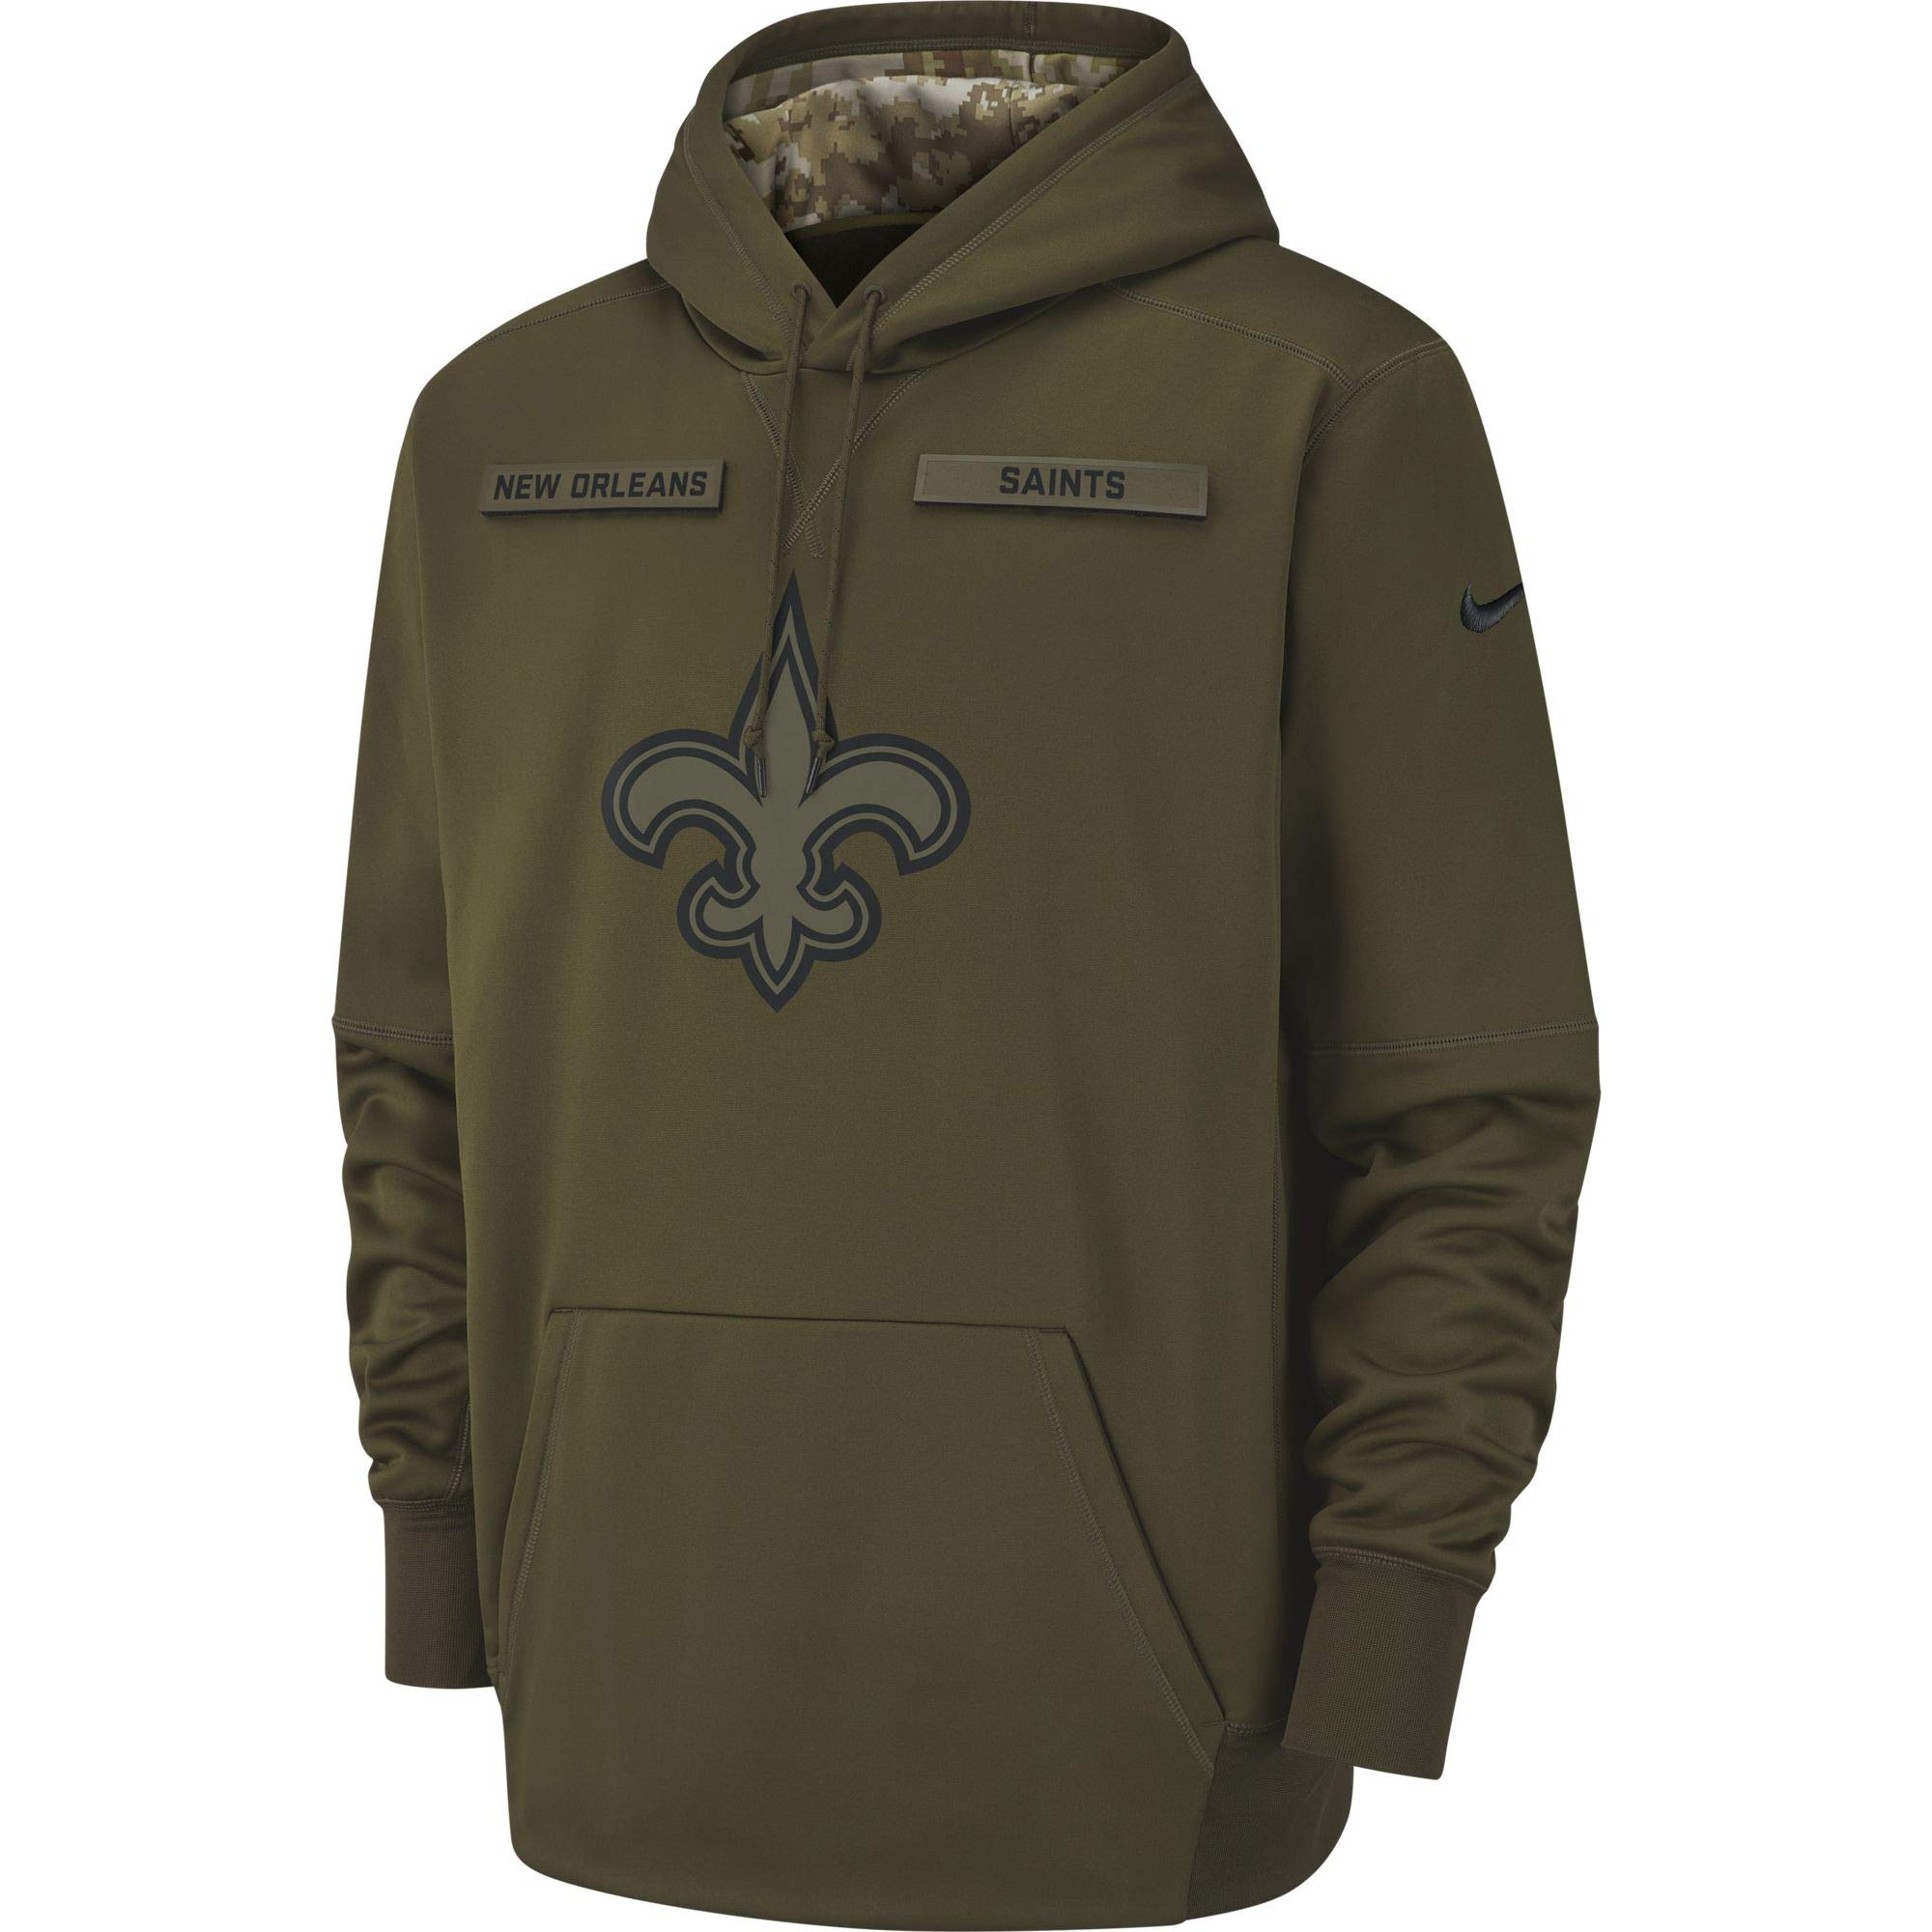 Nike Men's New Orlean Saints Therma Fit Pullover STS Hoodie Olive Canvas/Black Size Medium